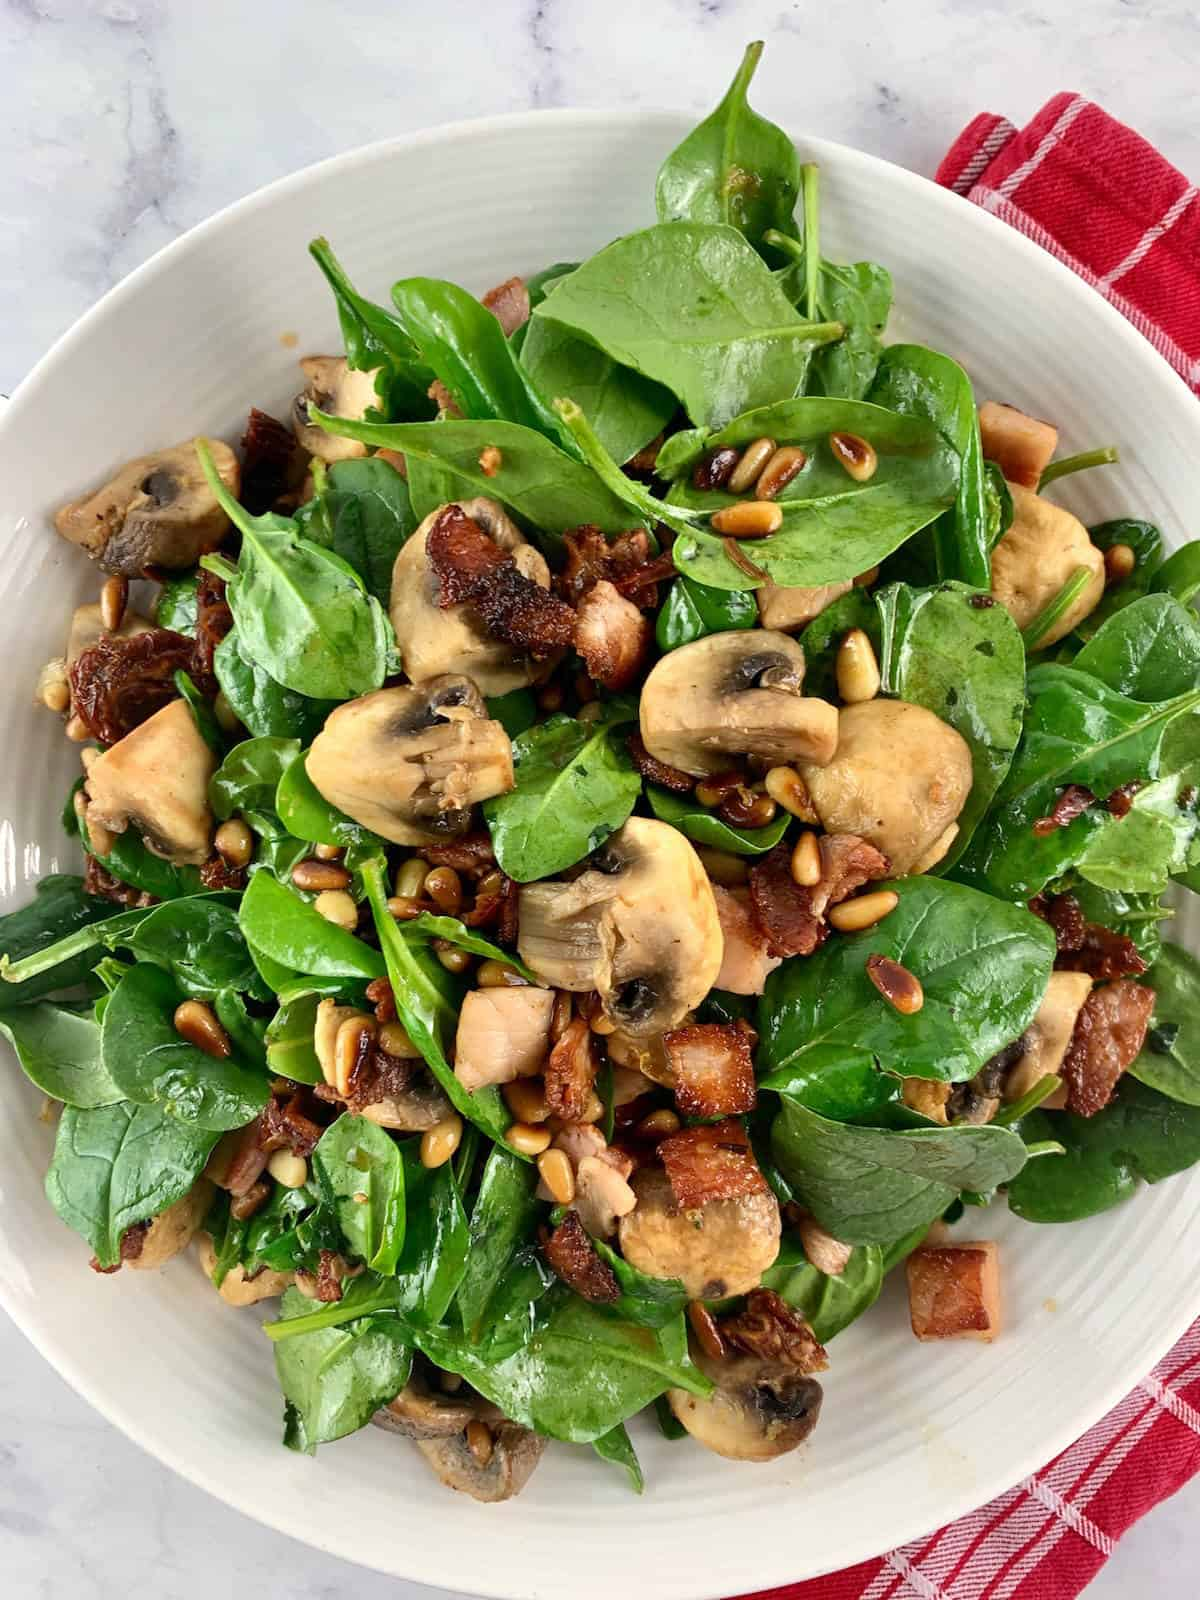 SPINACH MUSHROOM SALAD PORT IN WHITE BOWL WITH RED TEA TOWEL